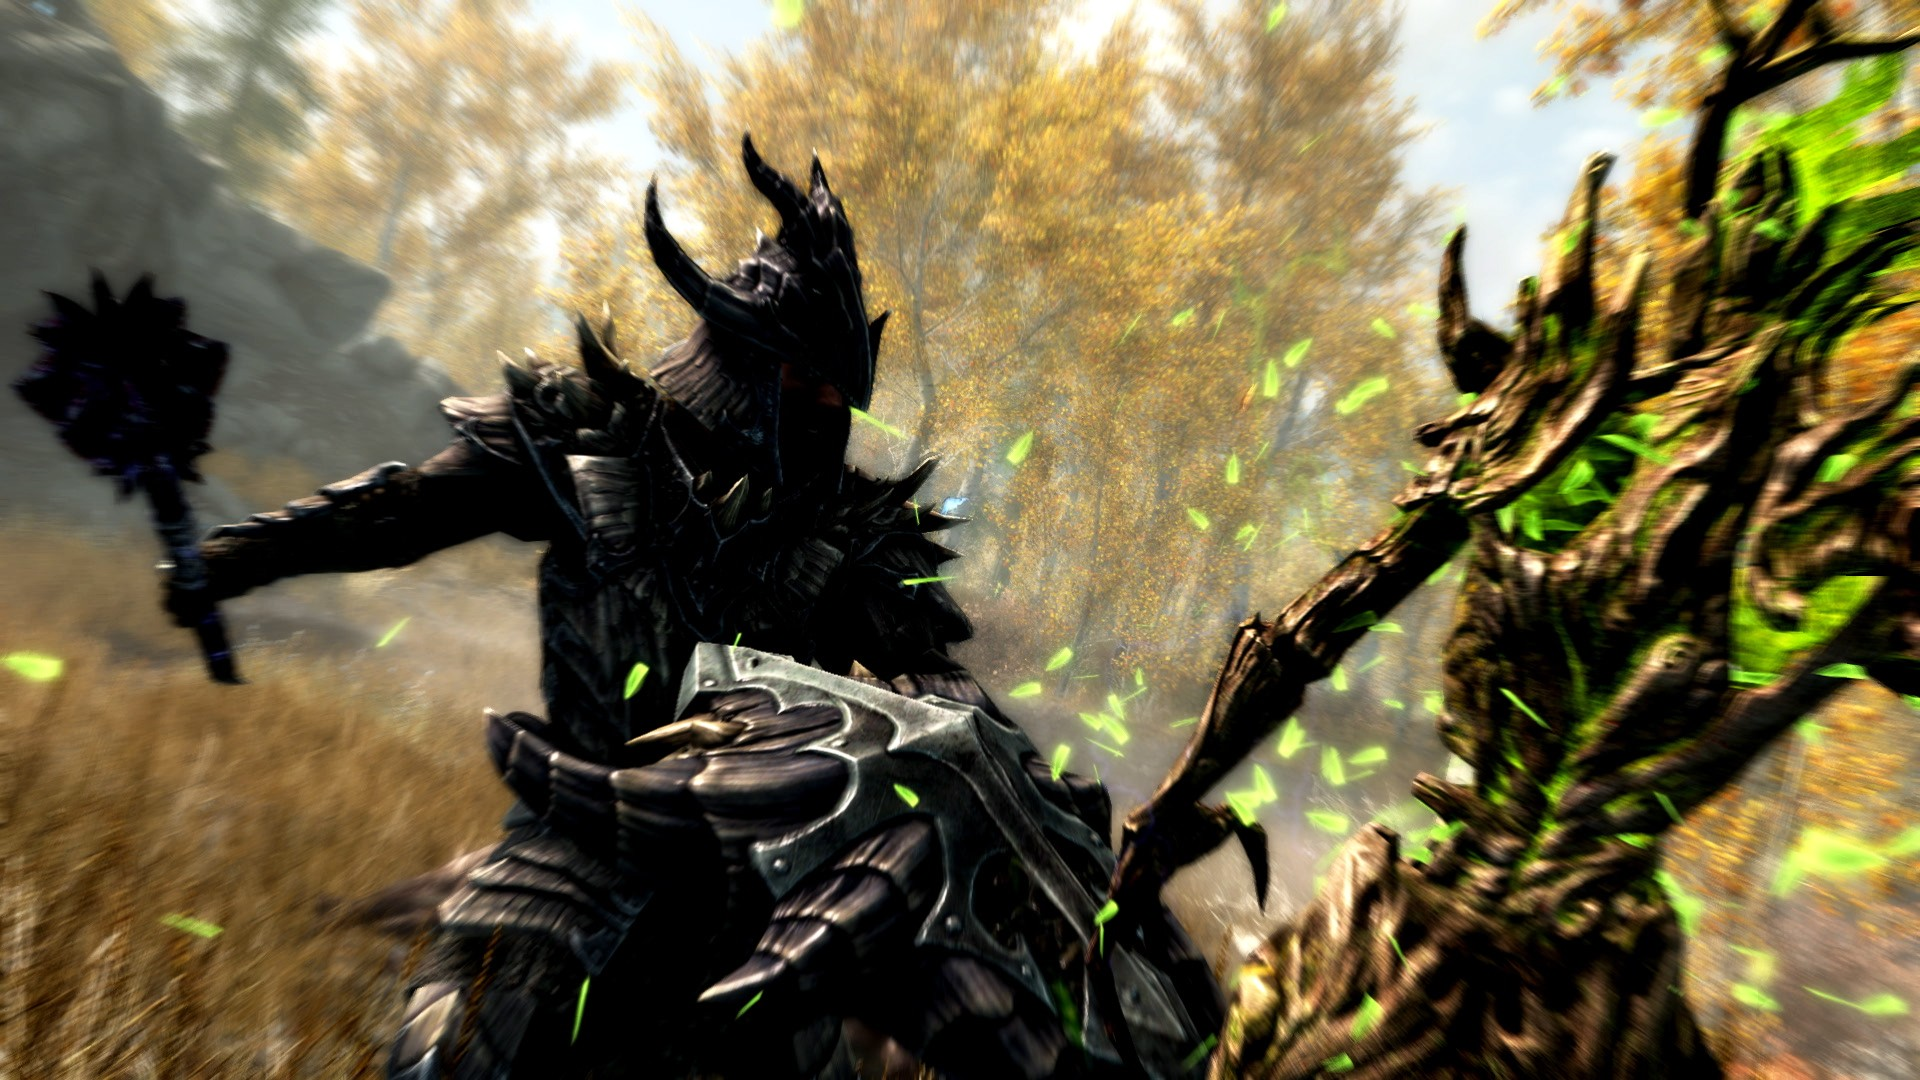 The Elder Scrolls V Skyrim Special Edition Confirmed For Consoles And Pc First Screens Show Enhanced Graphics